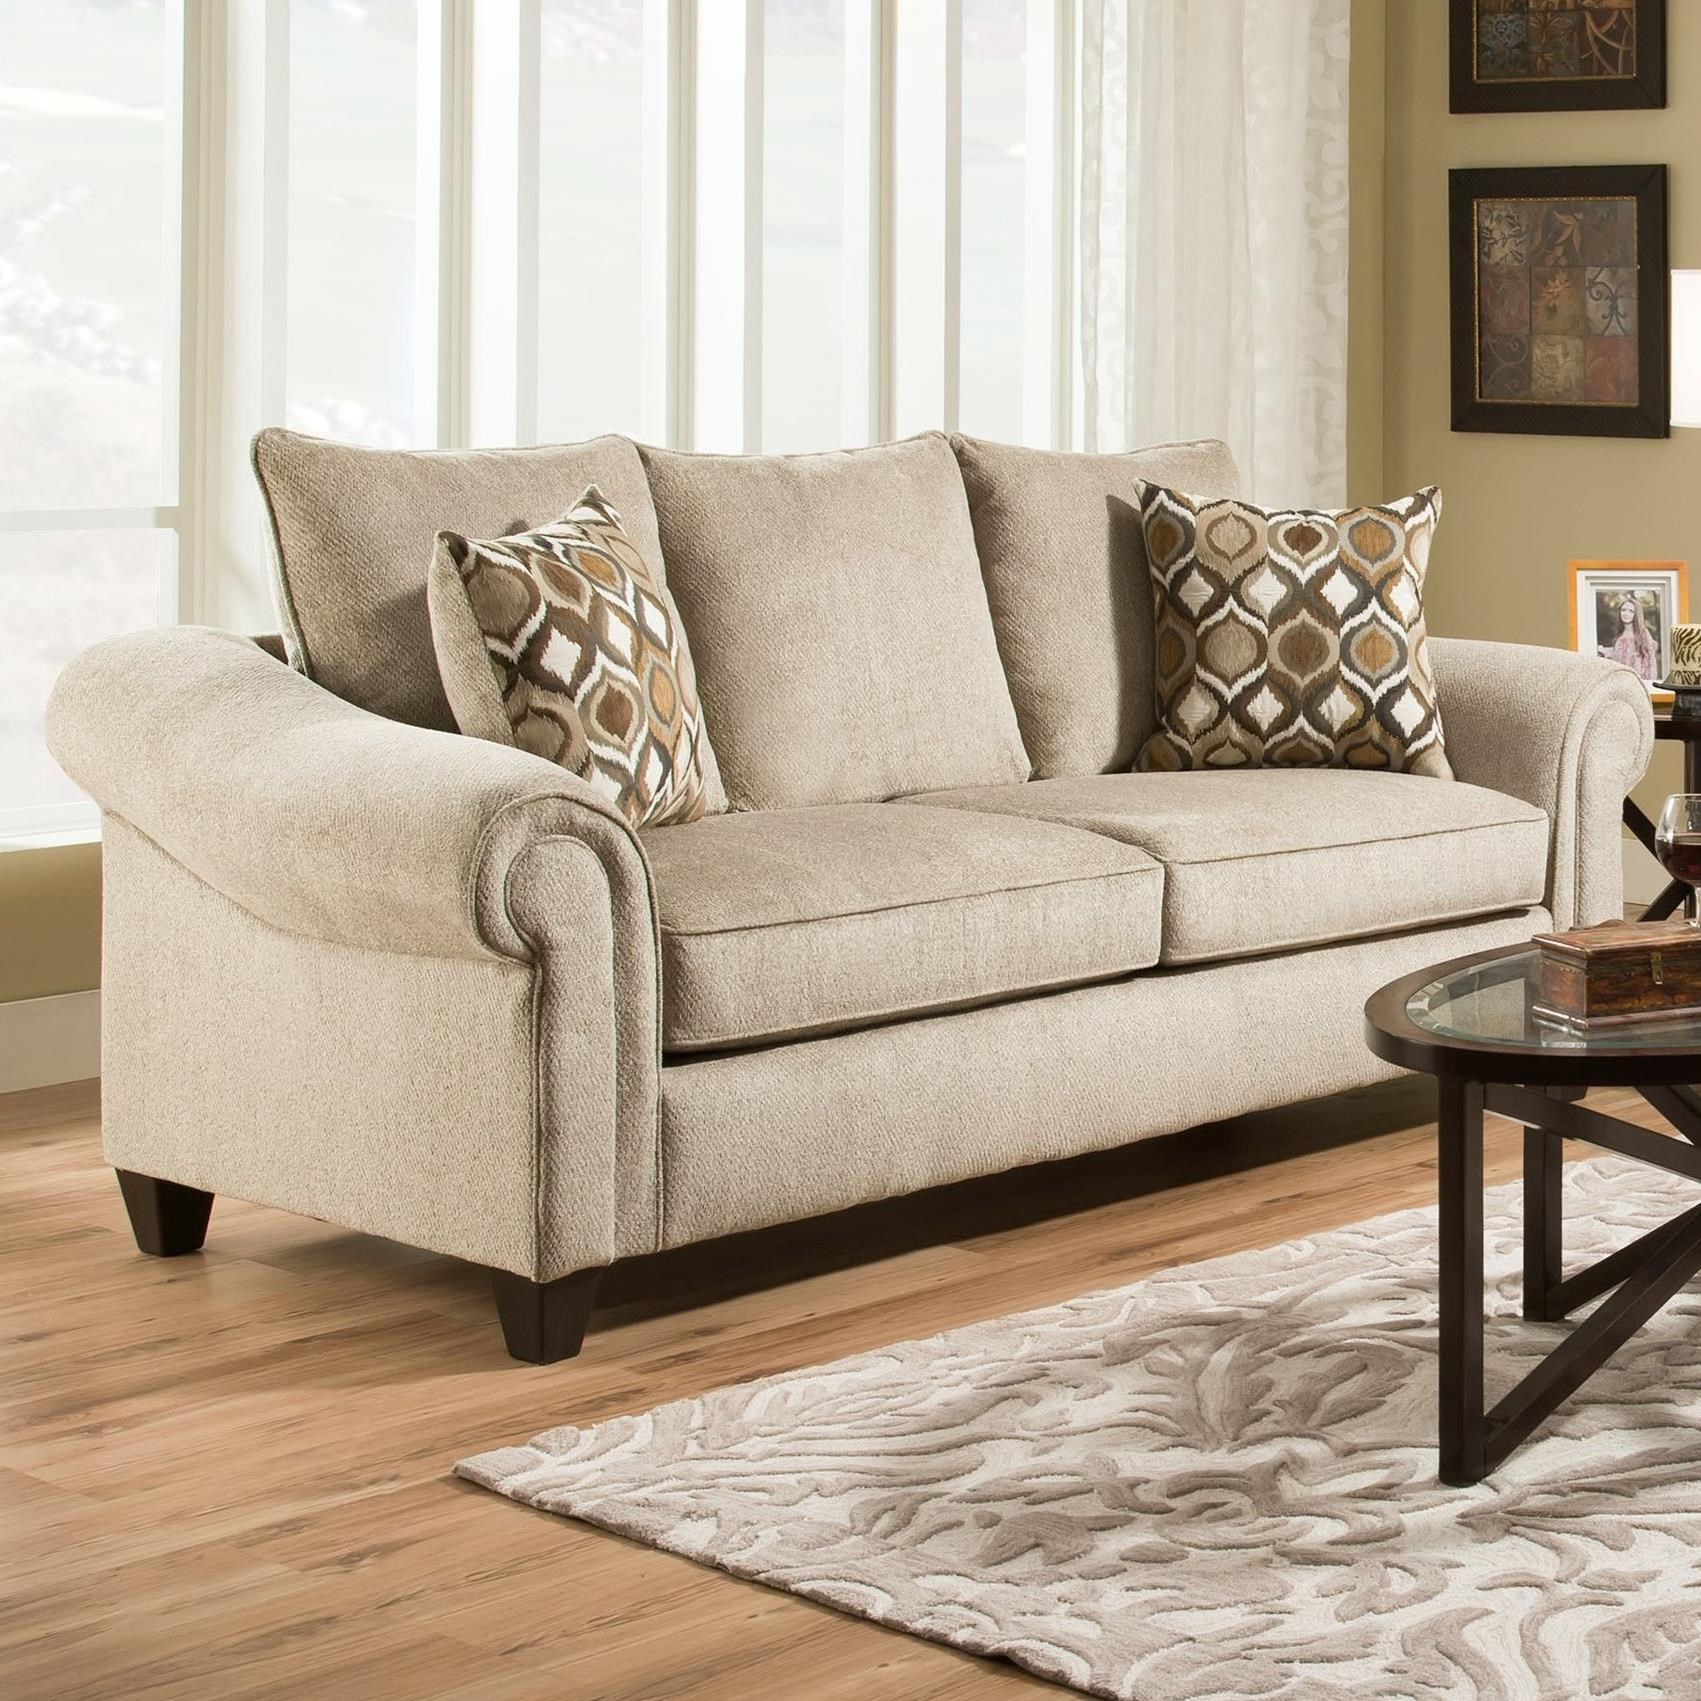 Transitional Sofa with 2 Seat Cushions - 2700 by American Furniture ...